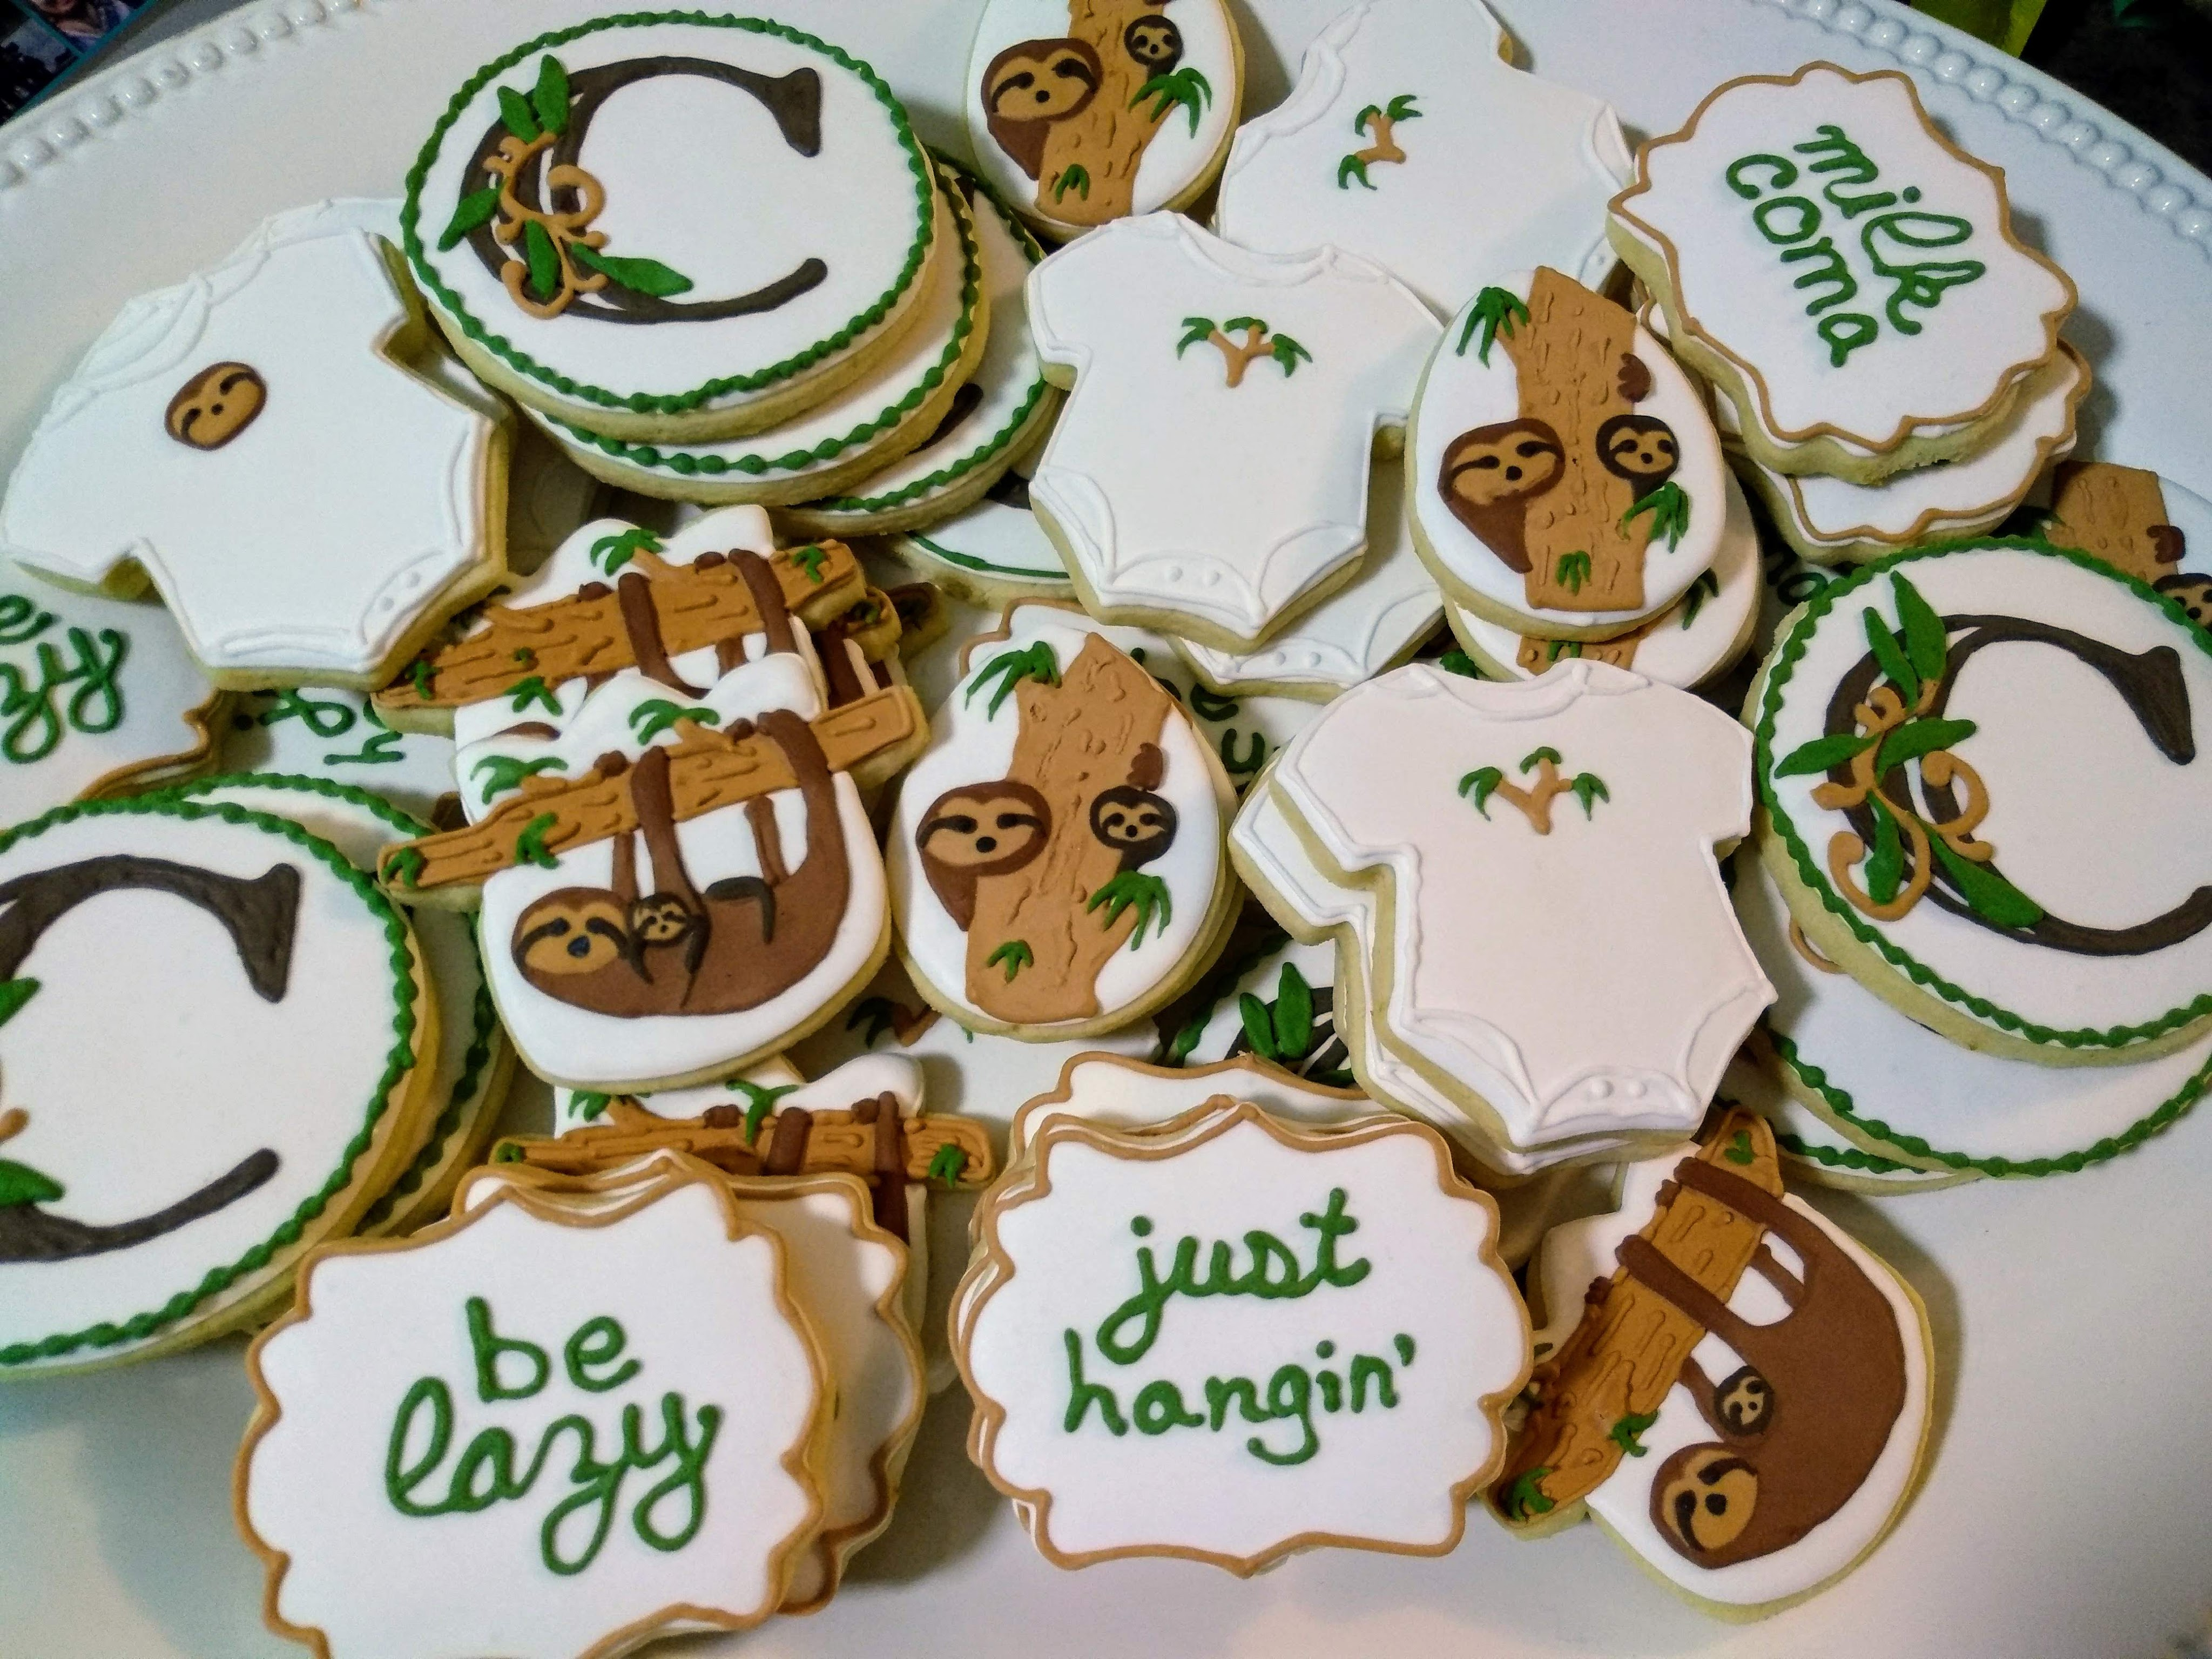 sloth baby shower royal icing sugar cookies be lazy milk coma just hangin'